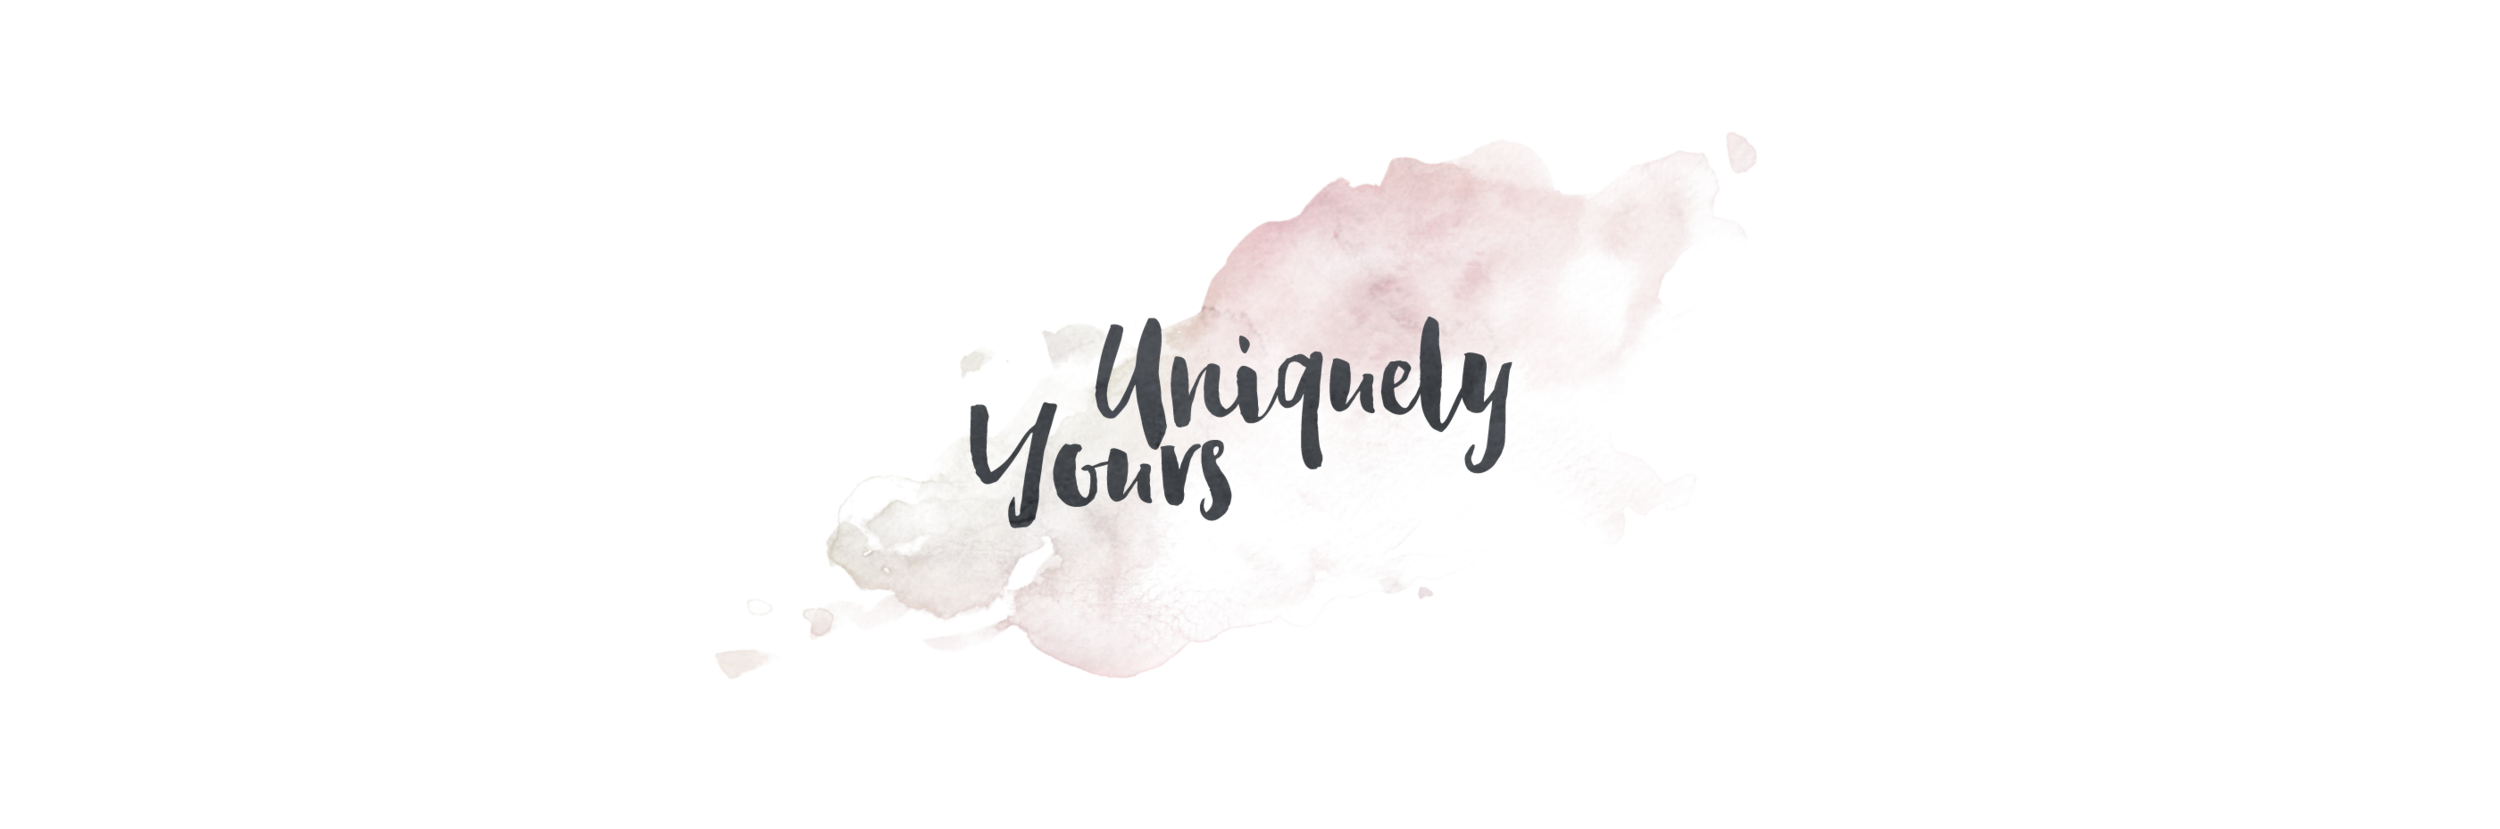 Unniquely Yours.PNG